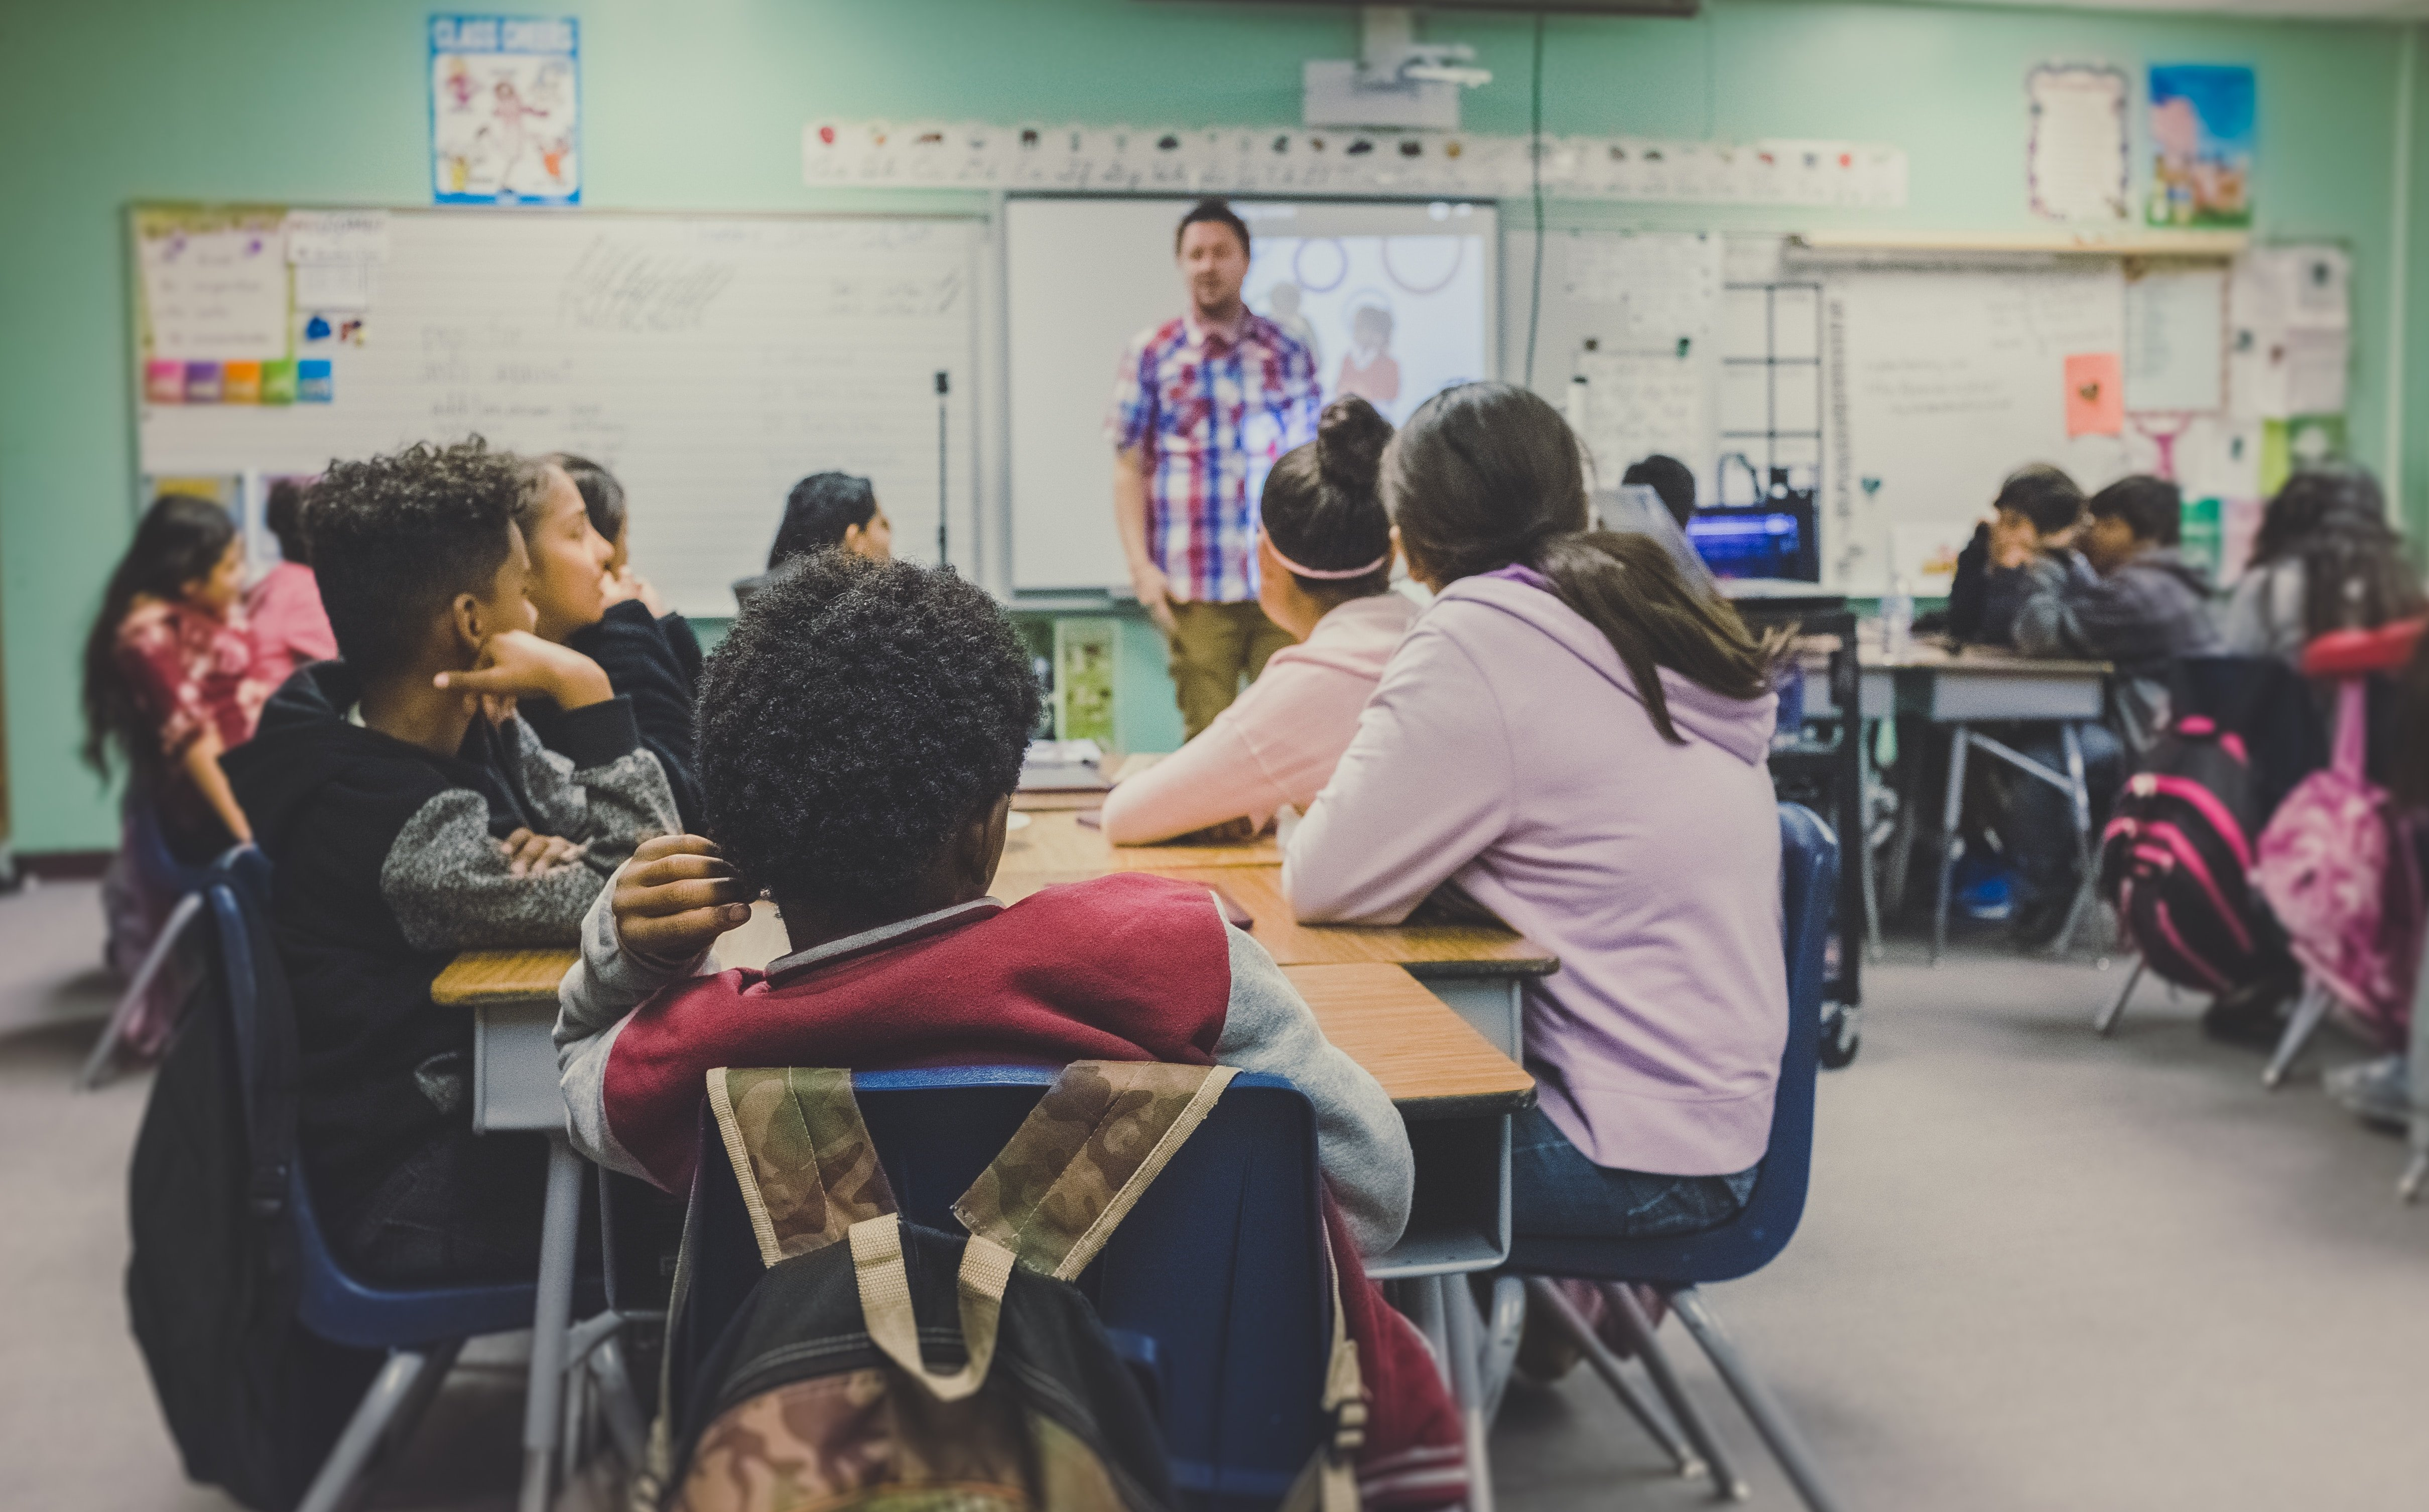 A class room full of students. | Source: Unsplash